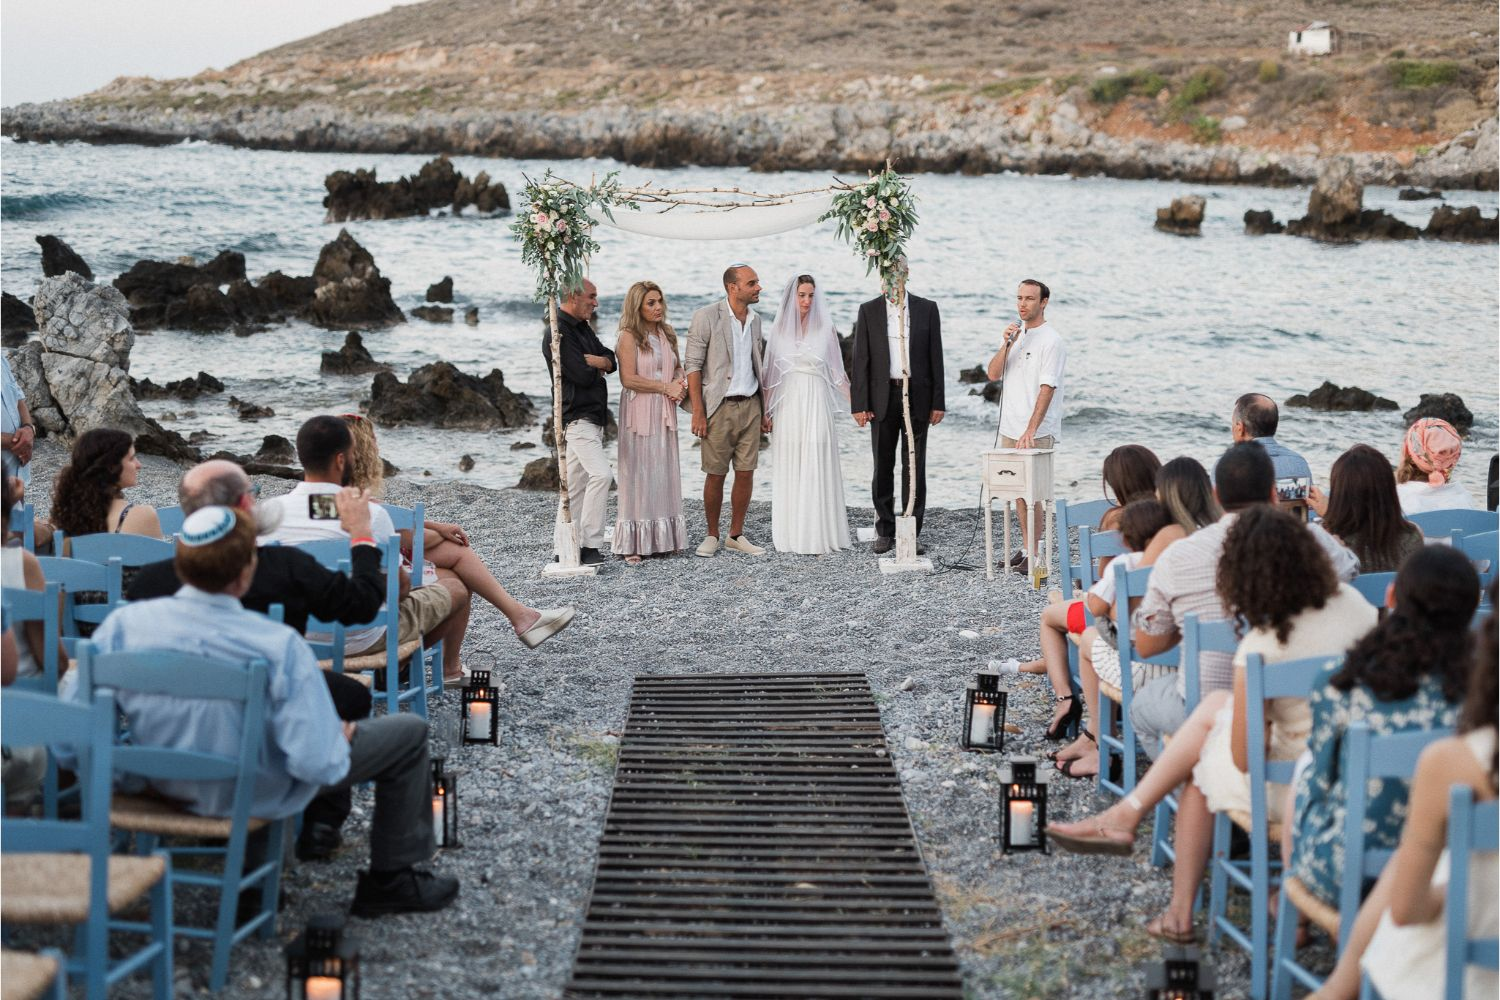 chuppah ceremony at seaside villa wedding in Crete